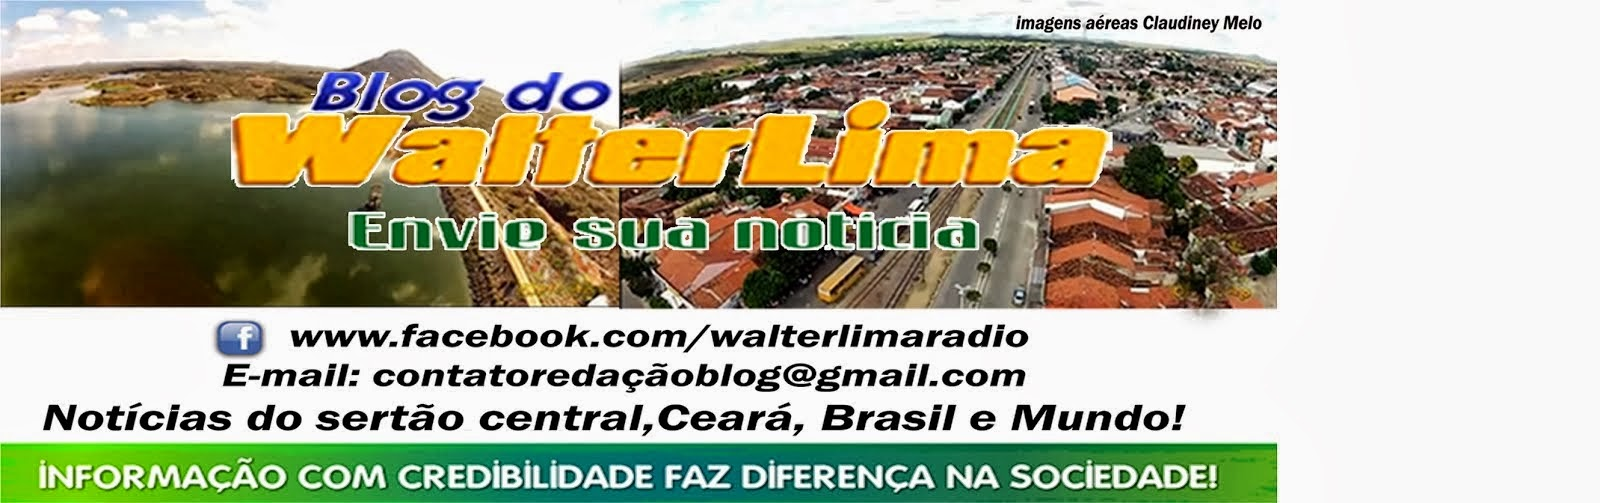 Blog do Walter Lima Senador Pompeu